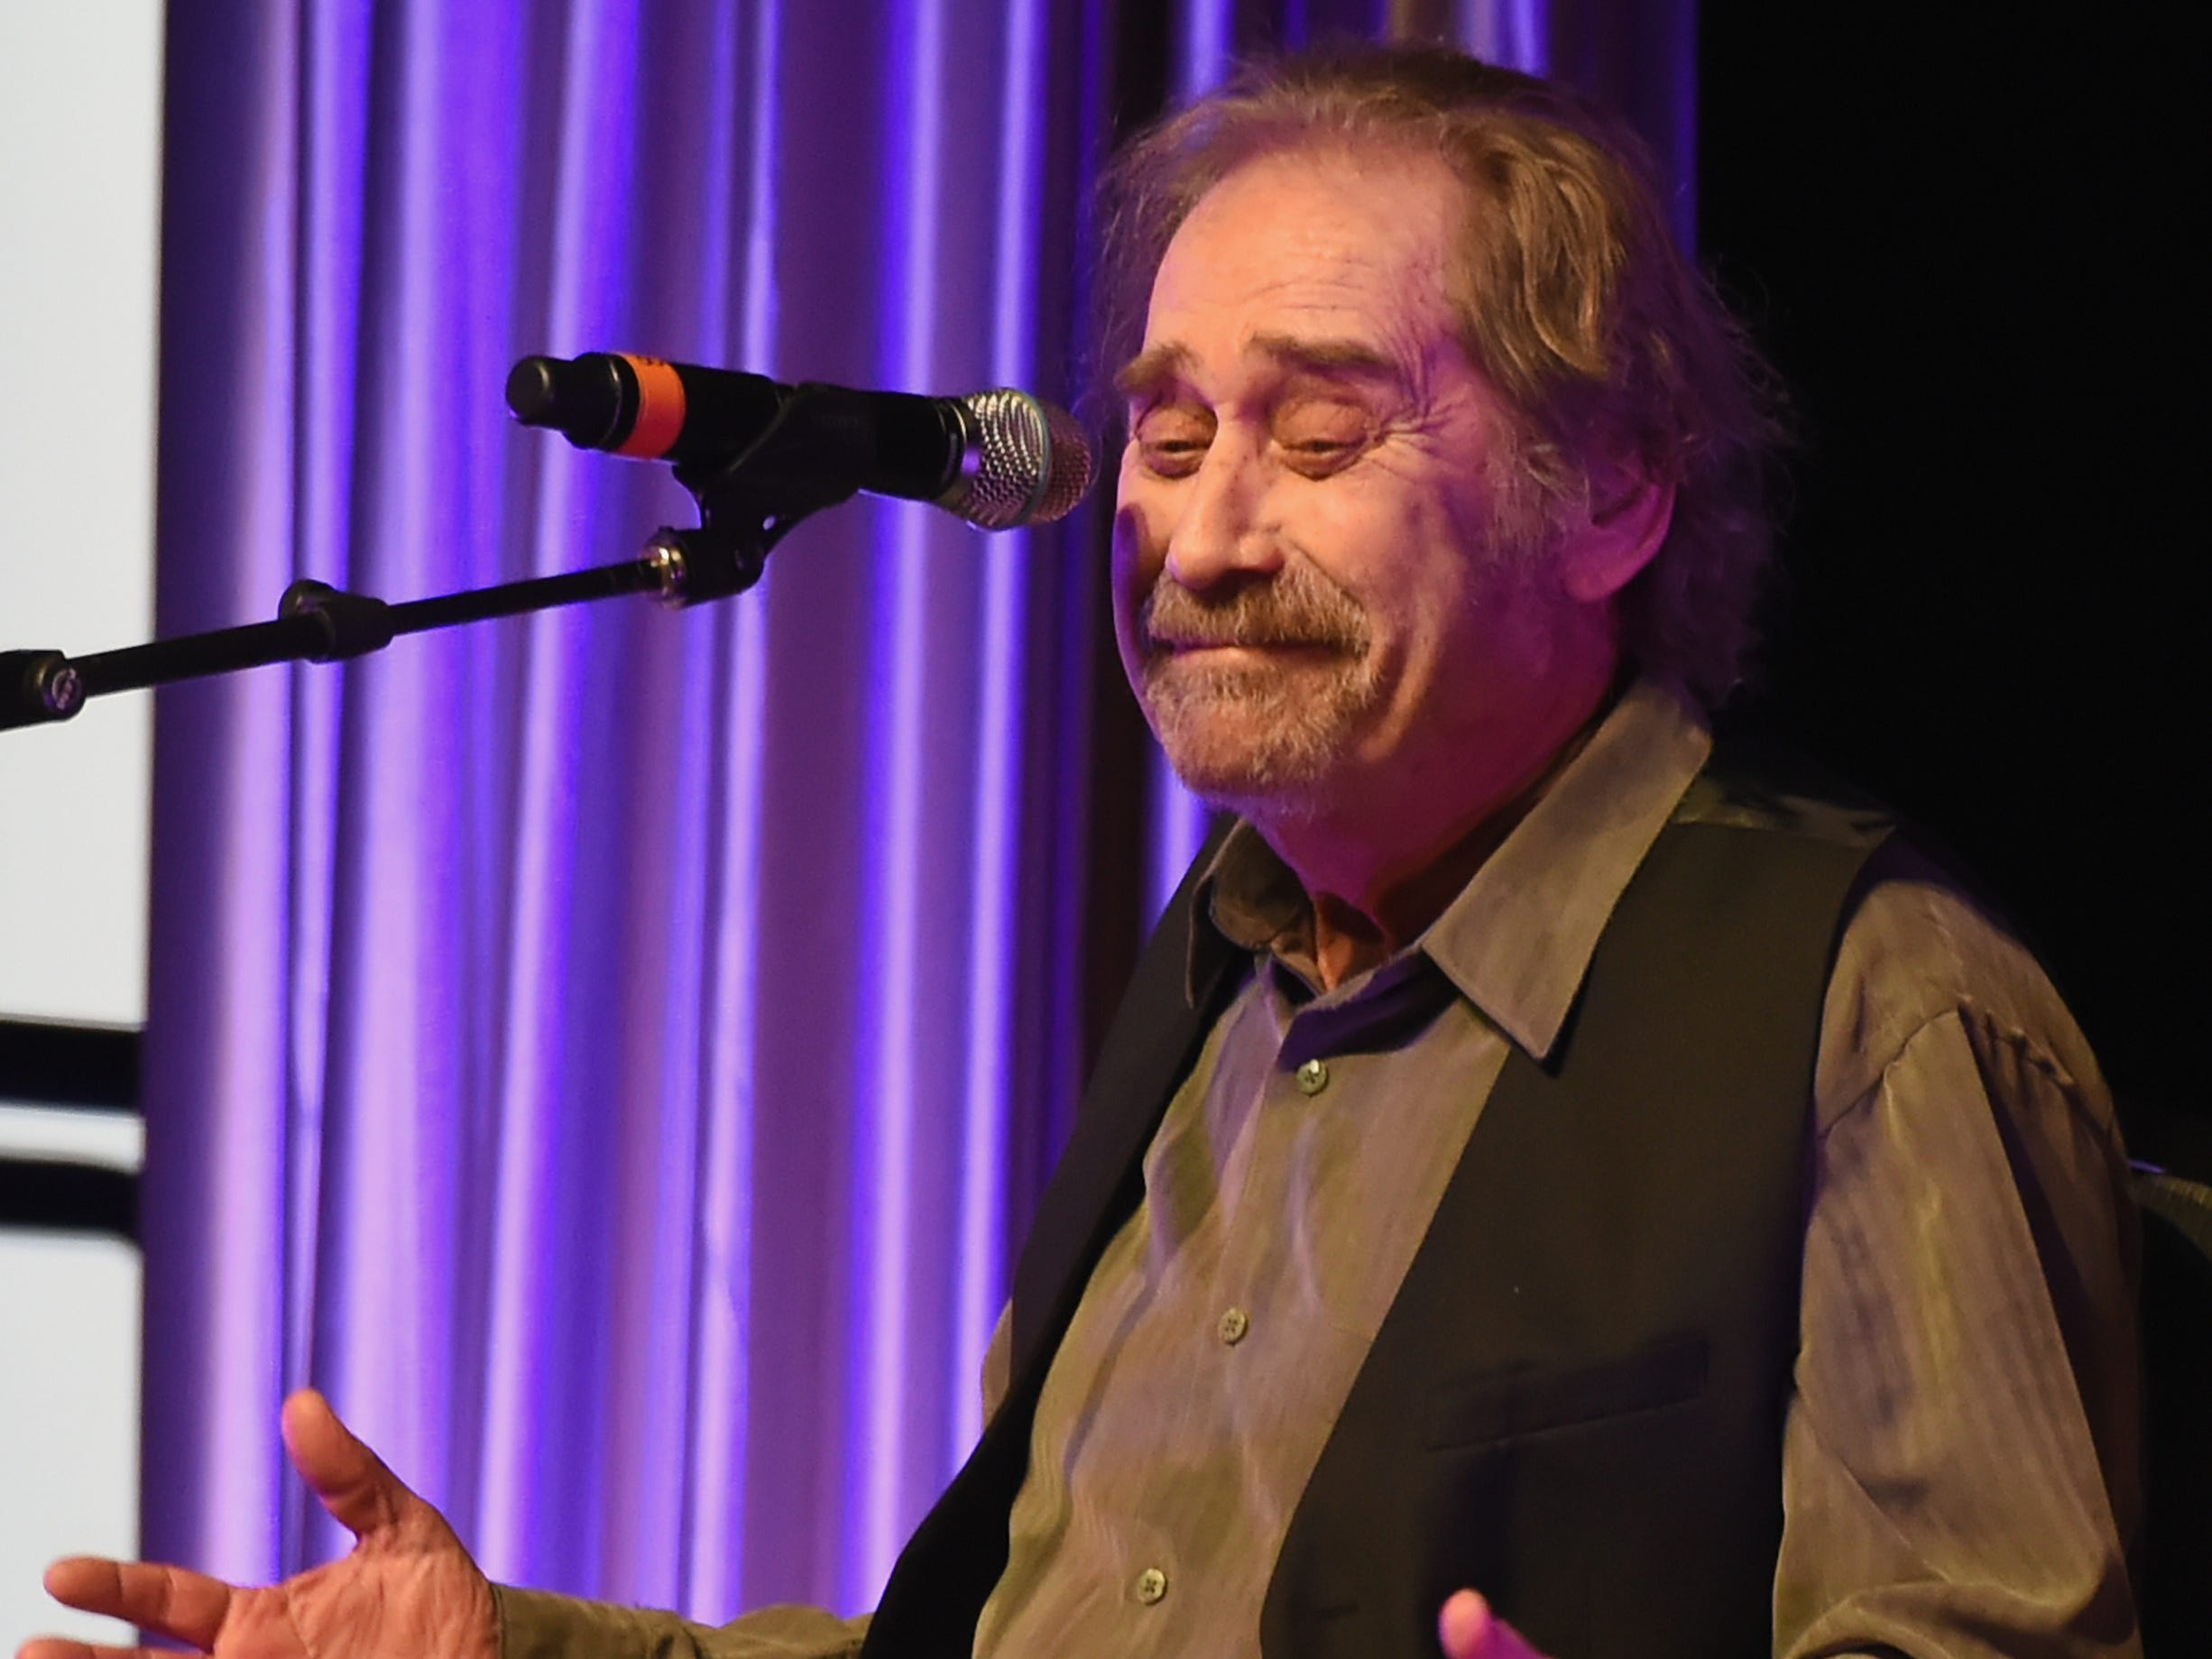 """Earl Thomas Conley performs """"Holding Her and Loving You"""" during the annual Nashville Songwriters Hall of Fame Awards show at Music City Center on Oct. 23, 2017."""